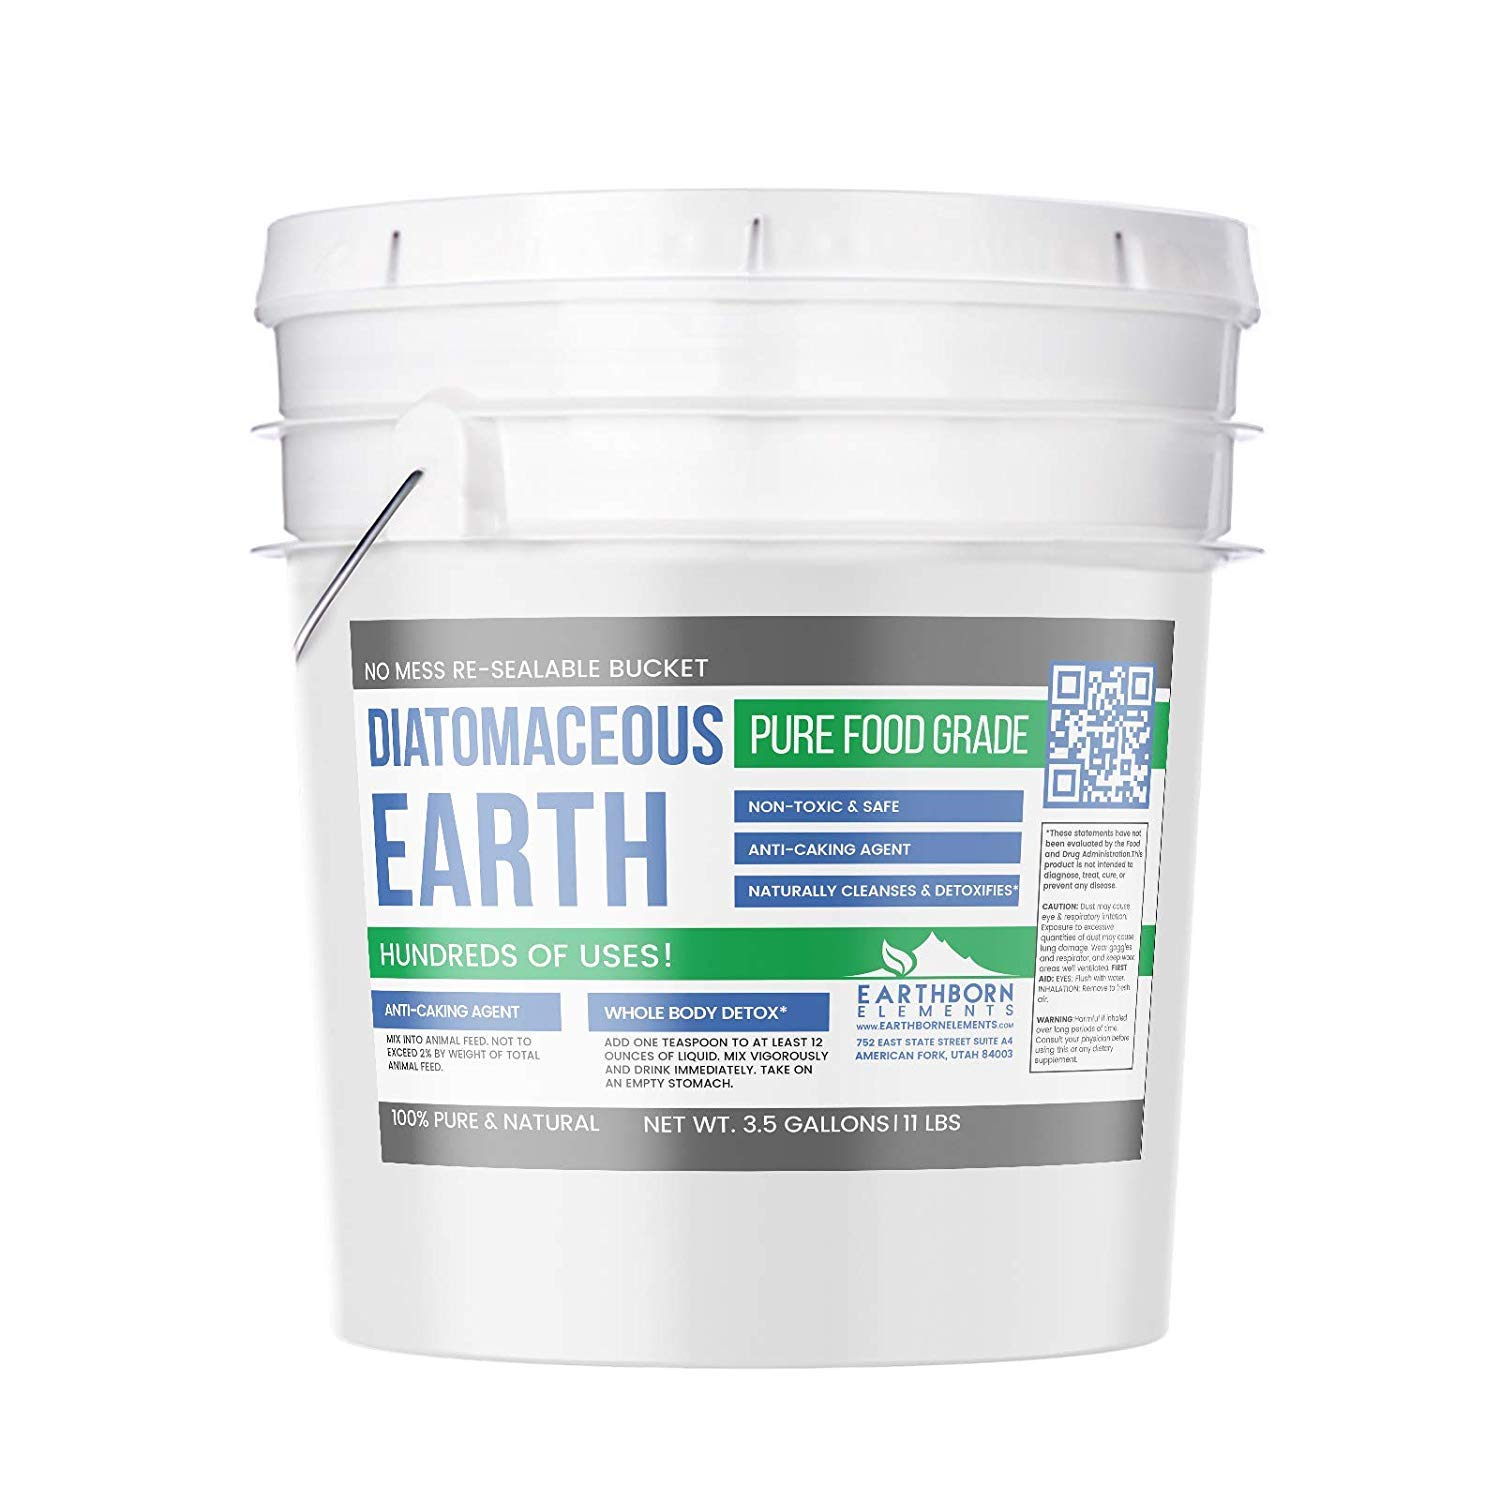 Diatomaceous Earth (3.5 Gallon (11 Lbs.)) by Earthborn Elements, Resealable Bucket, Highest Quality, FCC Food Grade, 100% Pure Freshwater Amorphous Silica